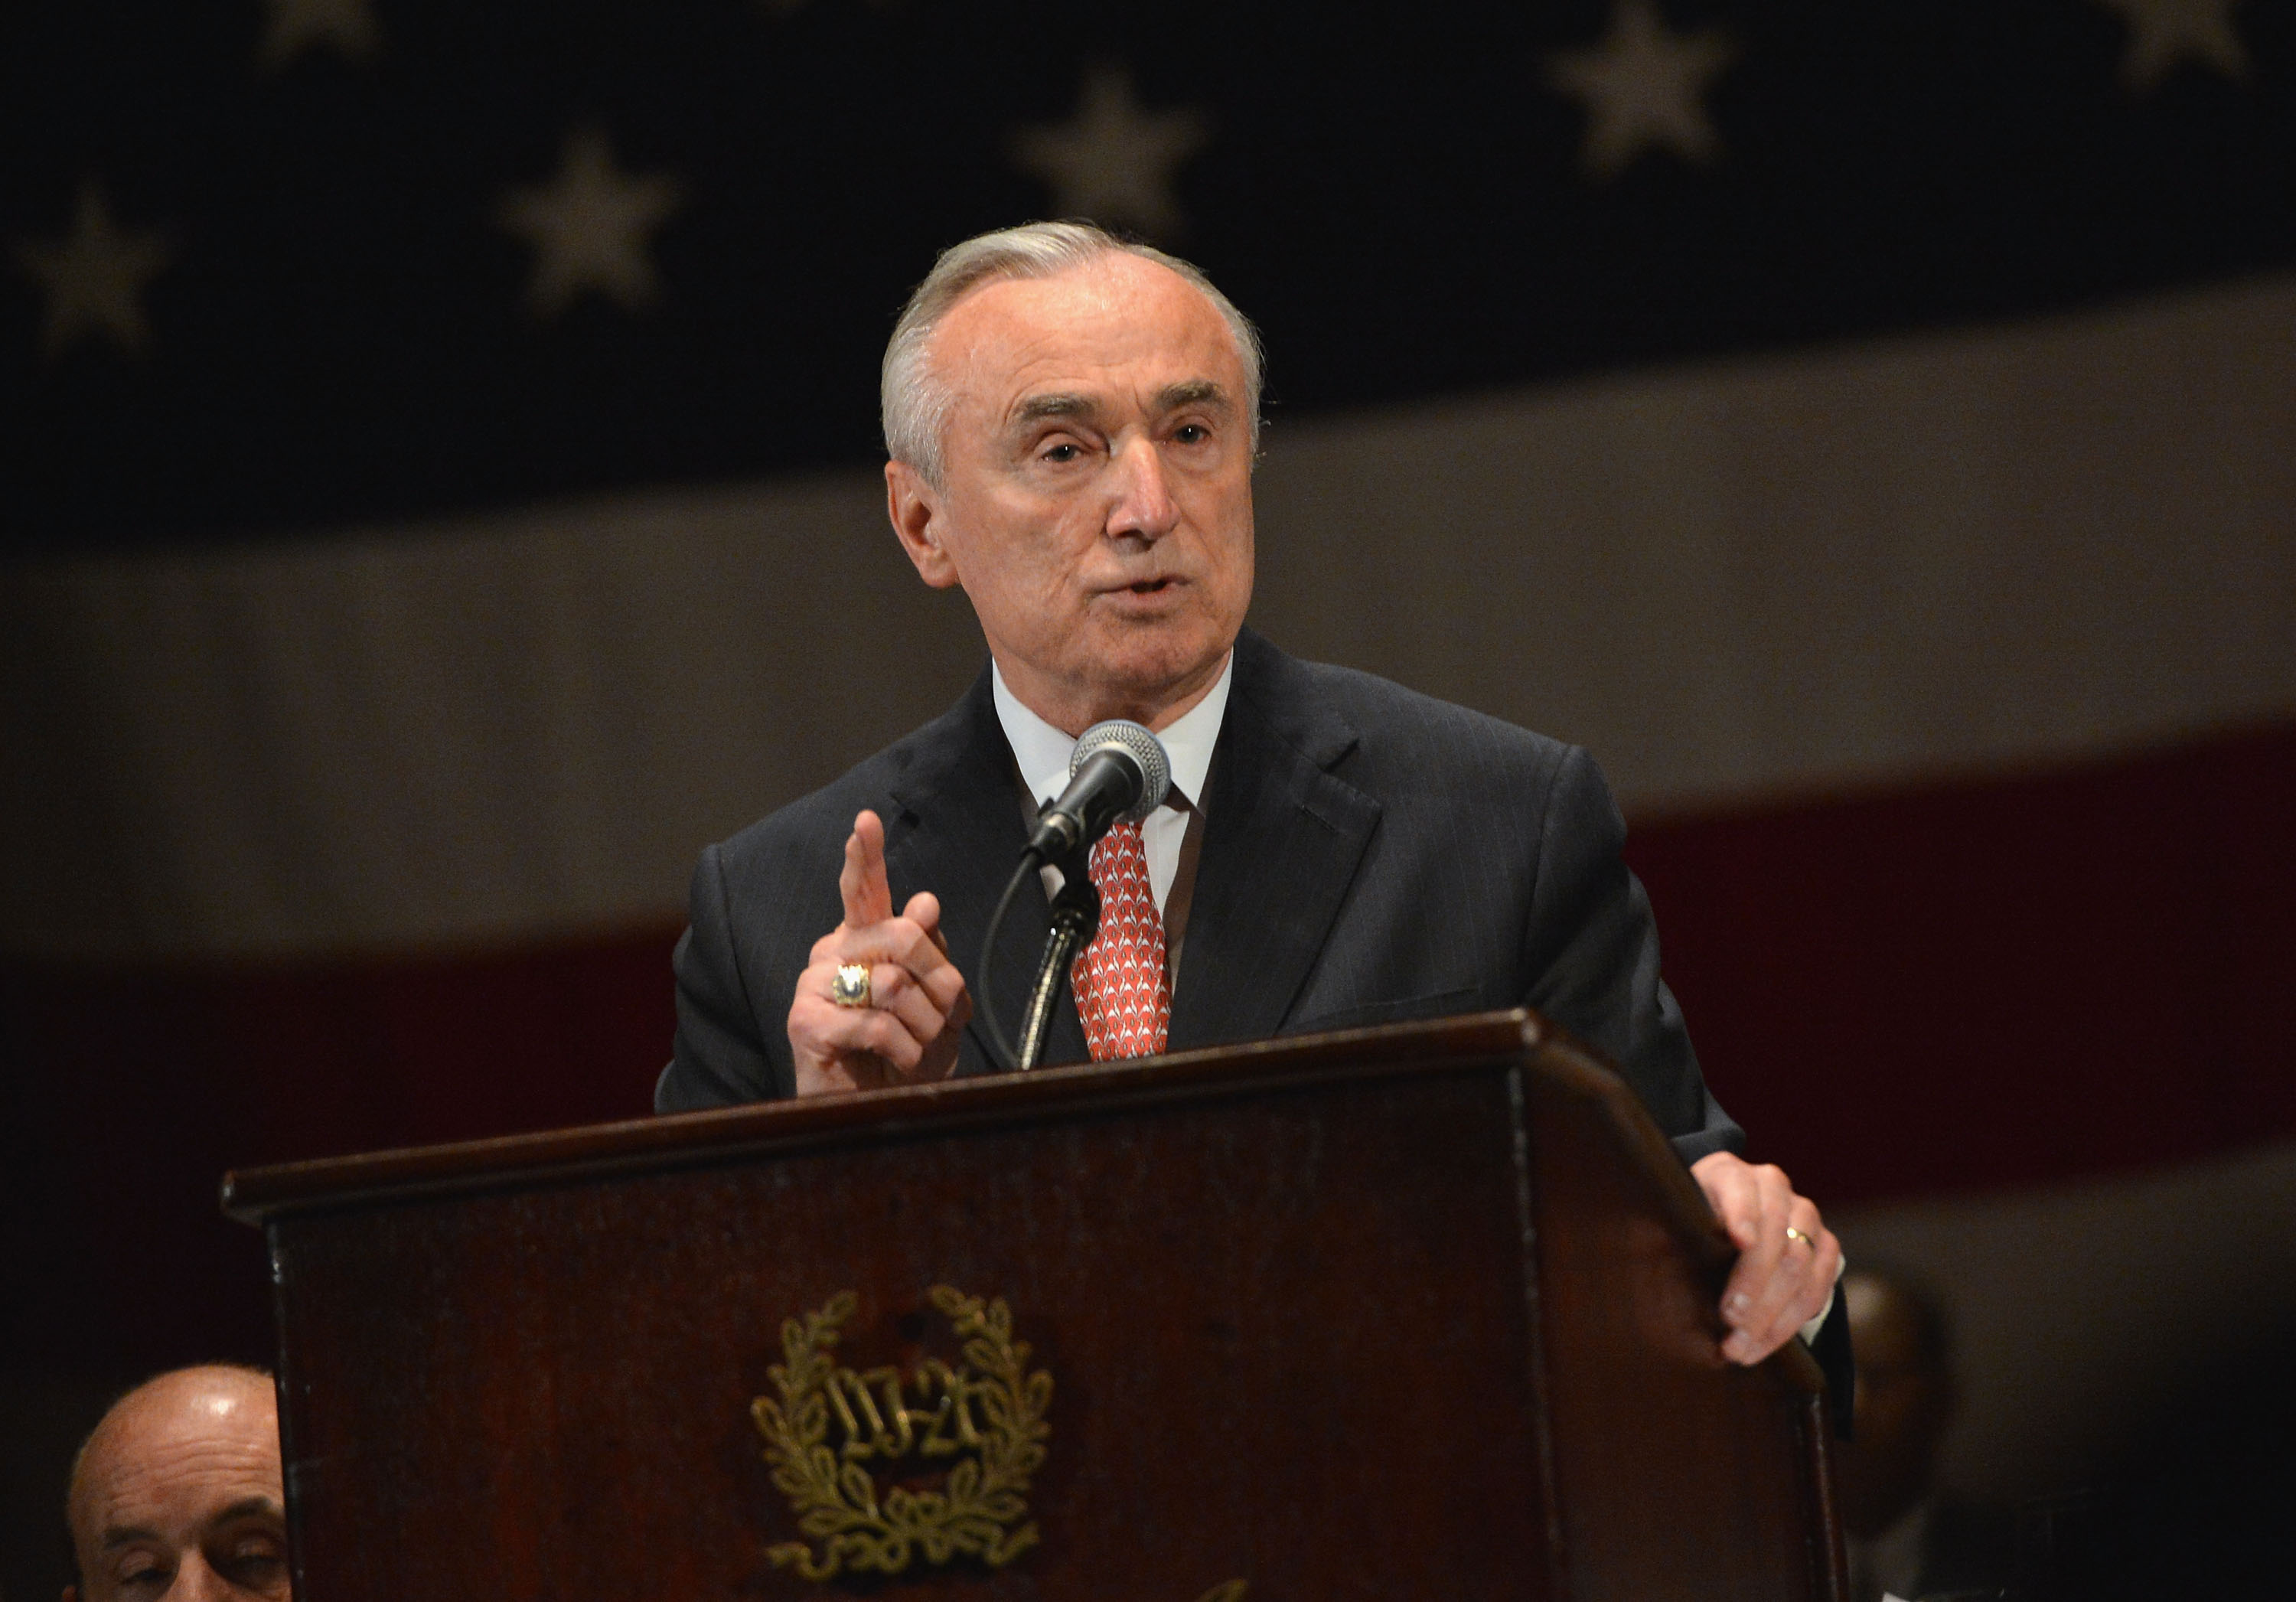 Police Commissioner Bill Bratton. (Photo:  Slaven Vlasic/Getty Images)